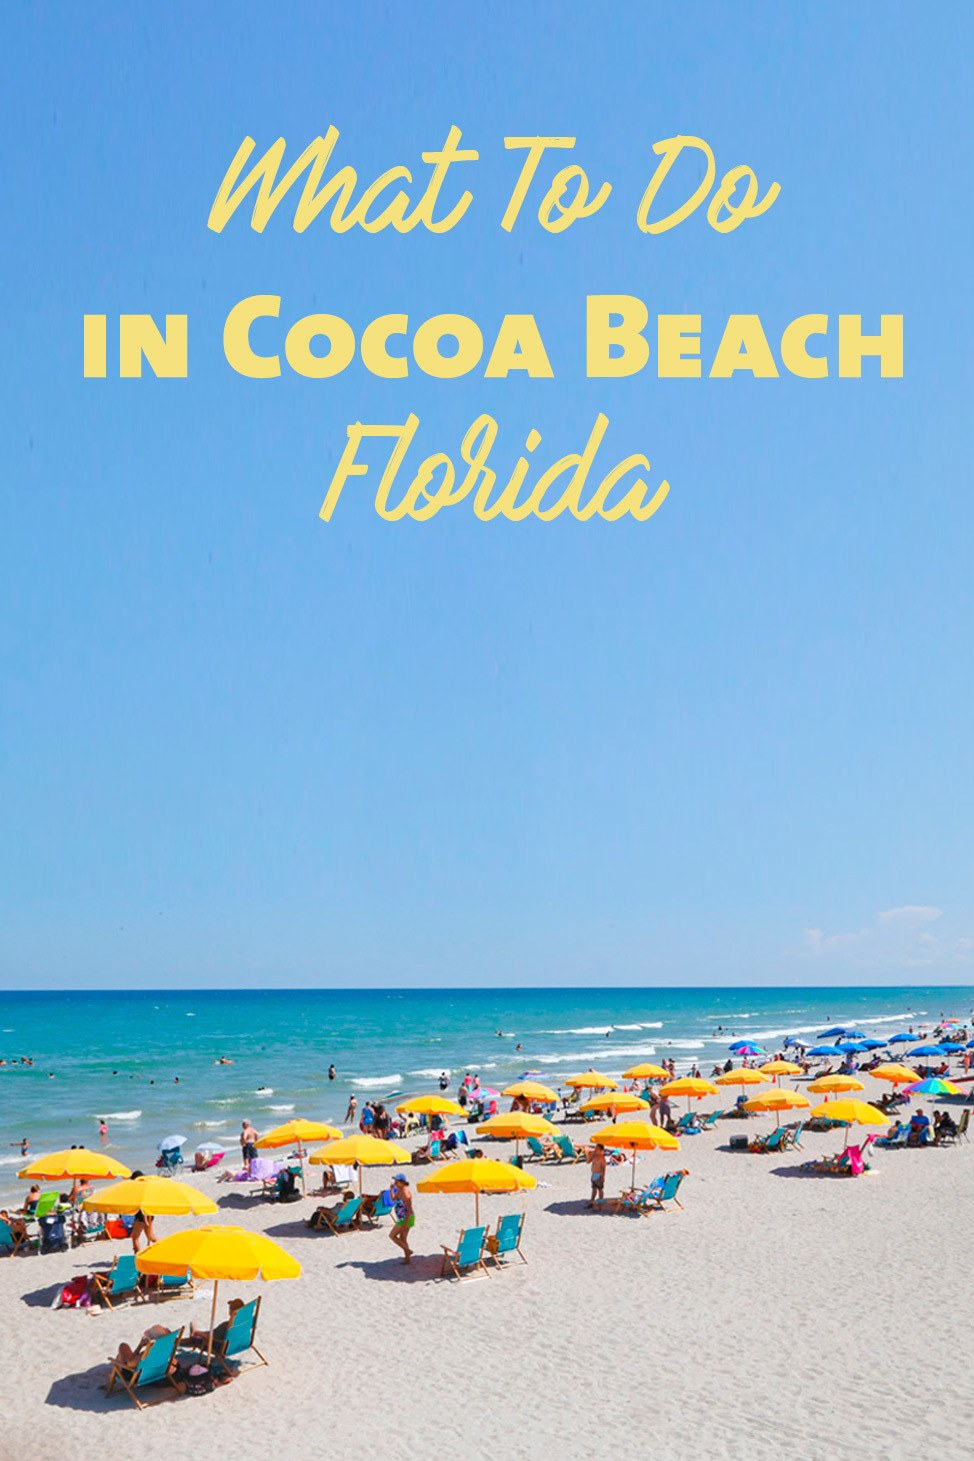 What To Do In Cocoa Beach Florida